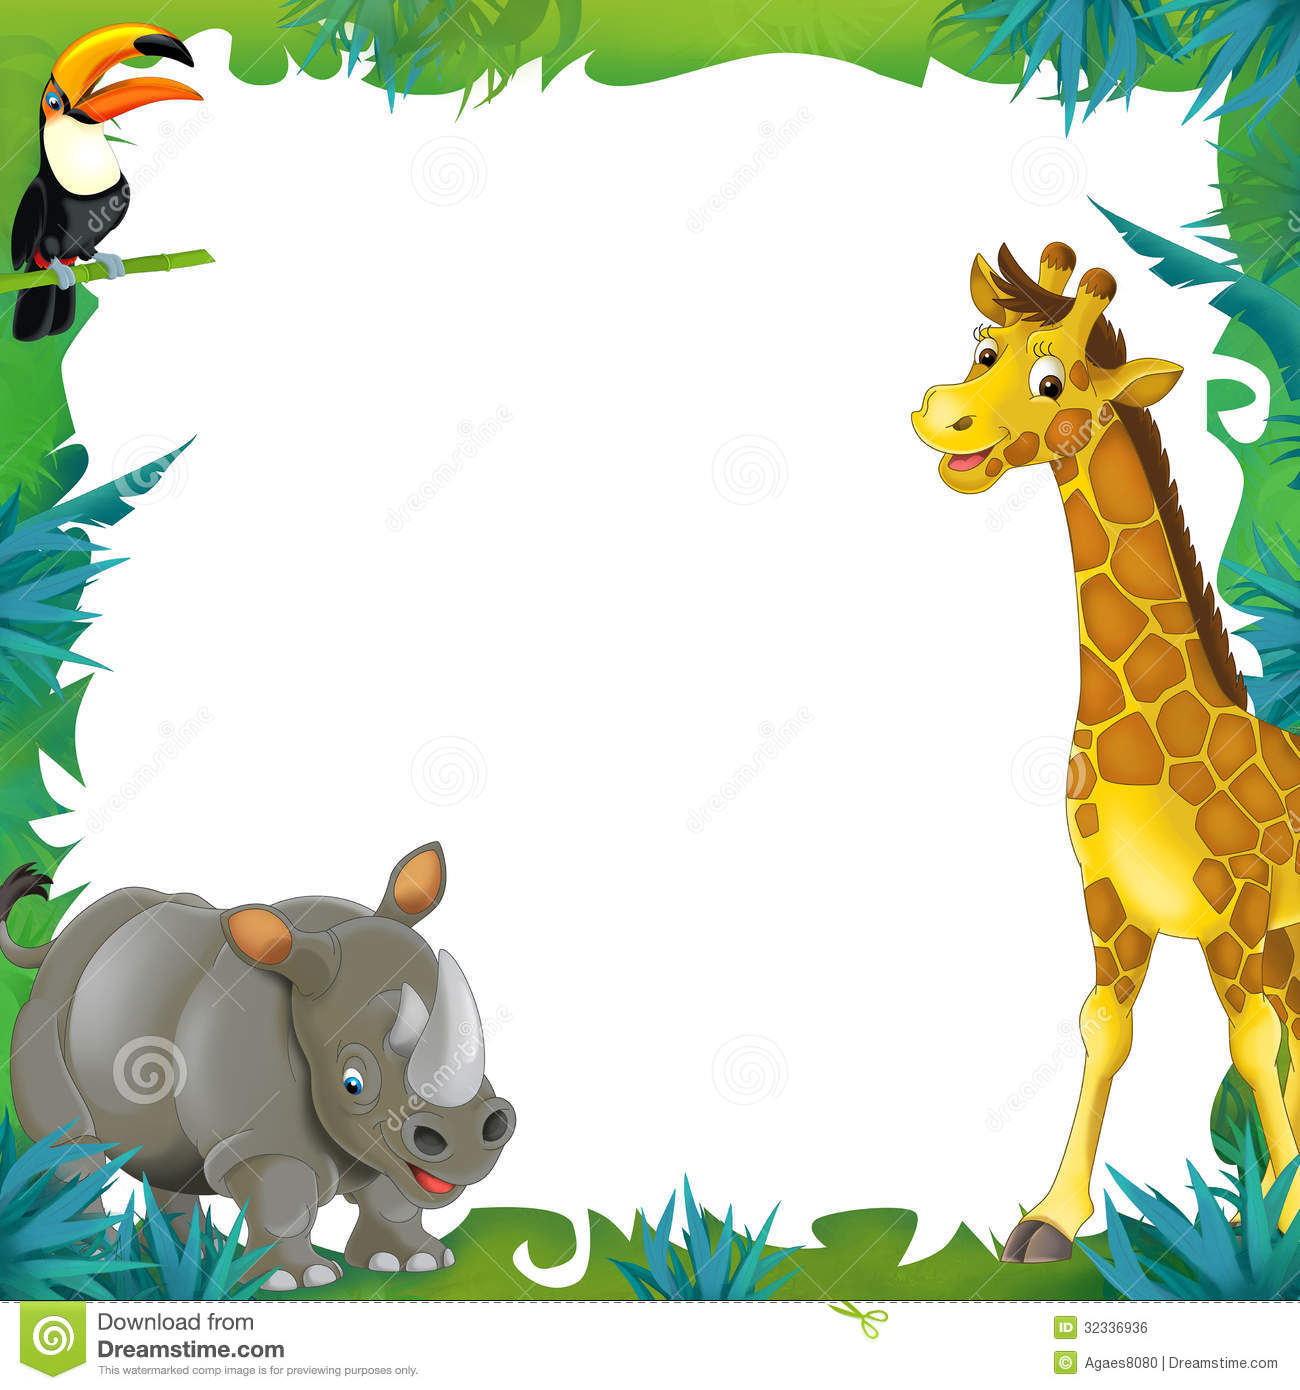 animal border clipart hd #12